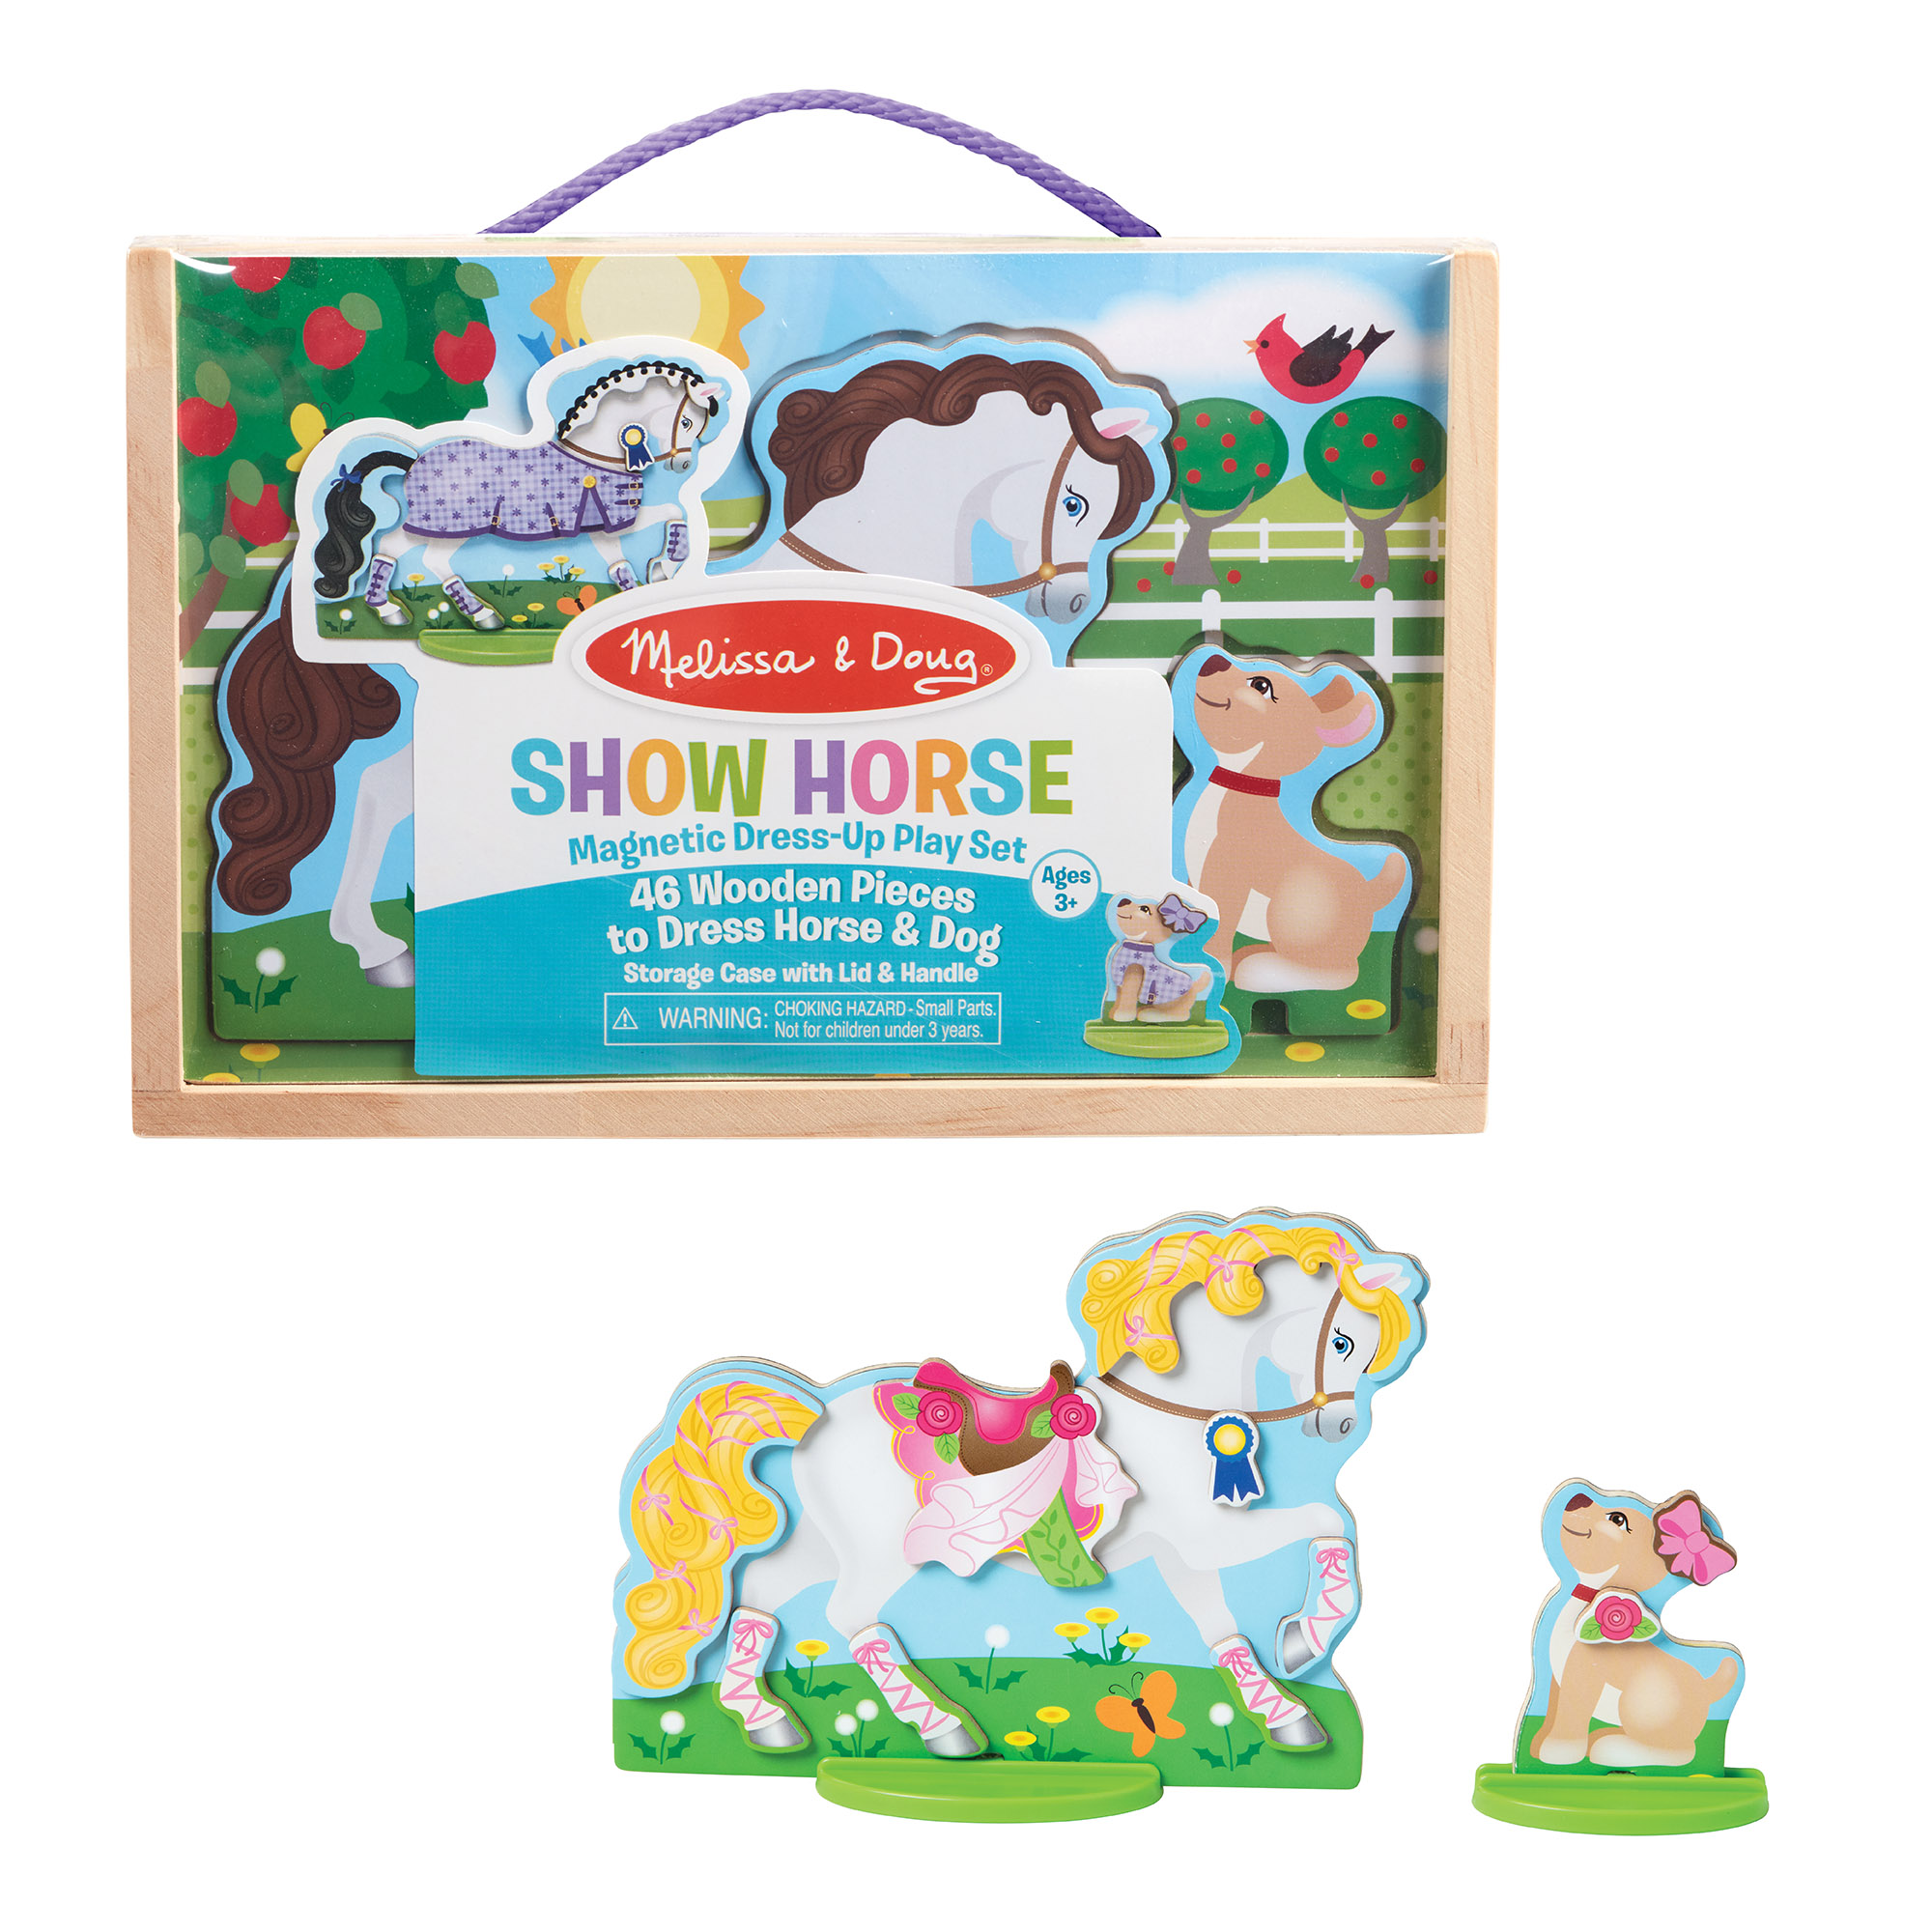 Melissa & Doug ~ Show Horse Magnetic Dress-Up Play Set